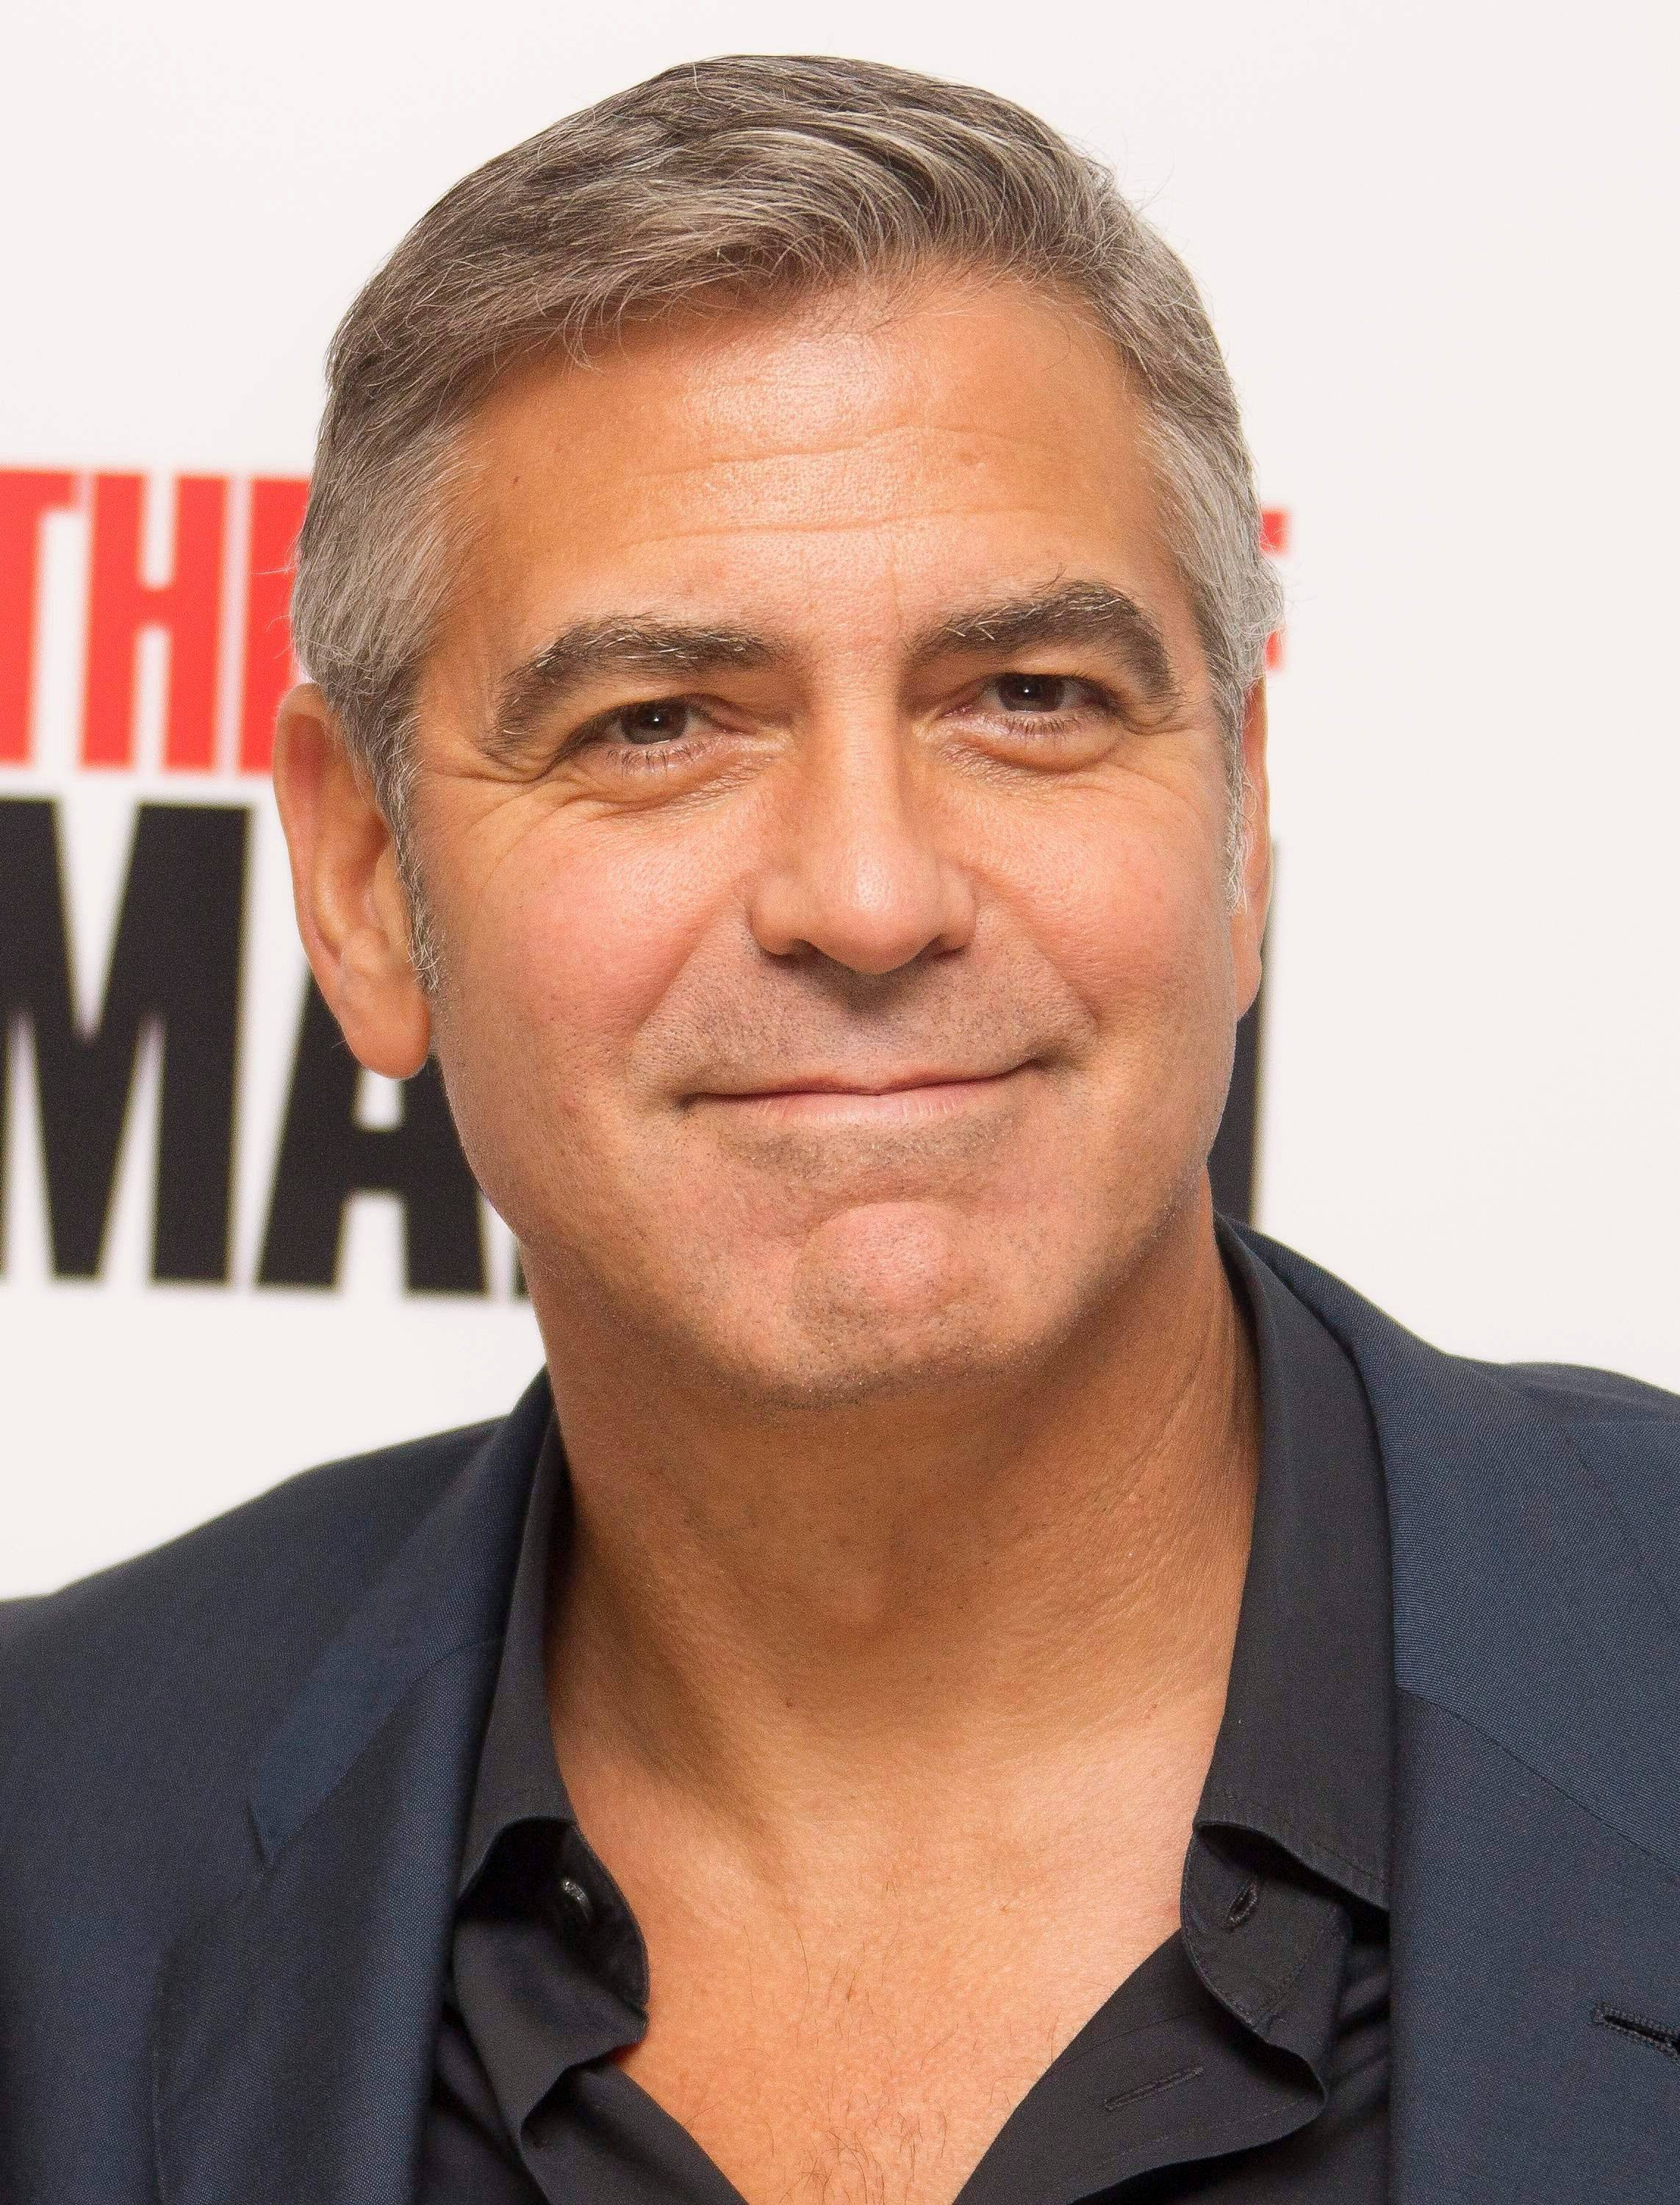 "In this Oct. 19, 2011 file photo, actor and director of the film, George Clooney poses for photographs at the official BFI London Film Festival screening of ""The Ides of March,"" in London. Clooney was nominated Tuesday, Jan. 24, 2012 for best actor for his role in ""The Descendants."""